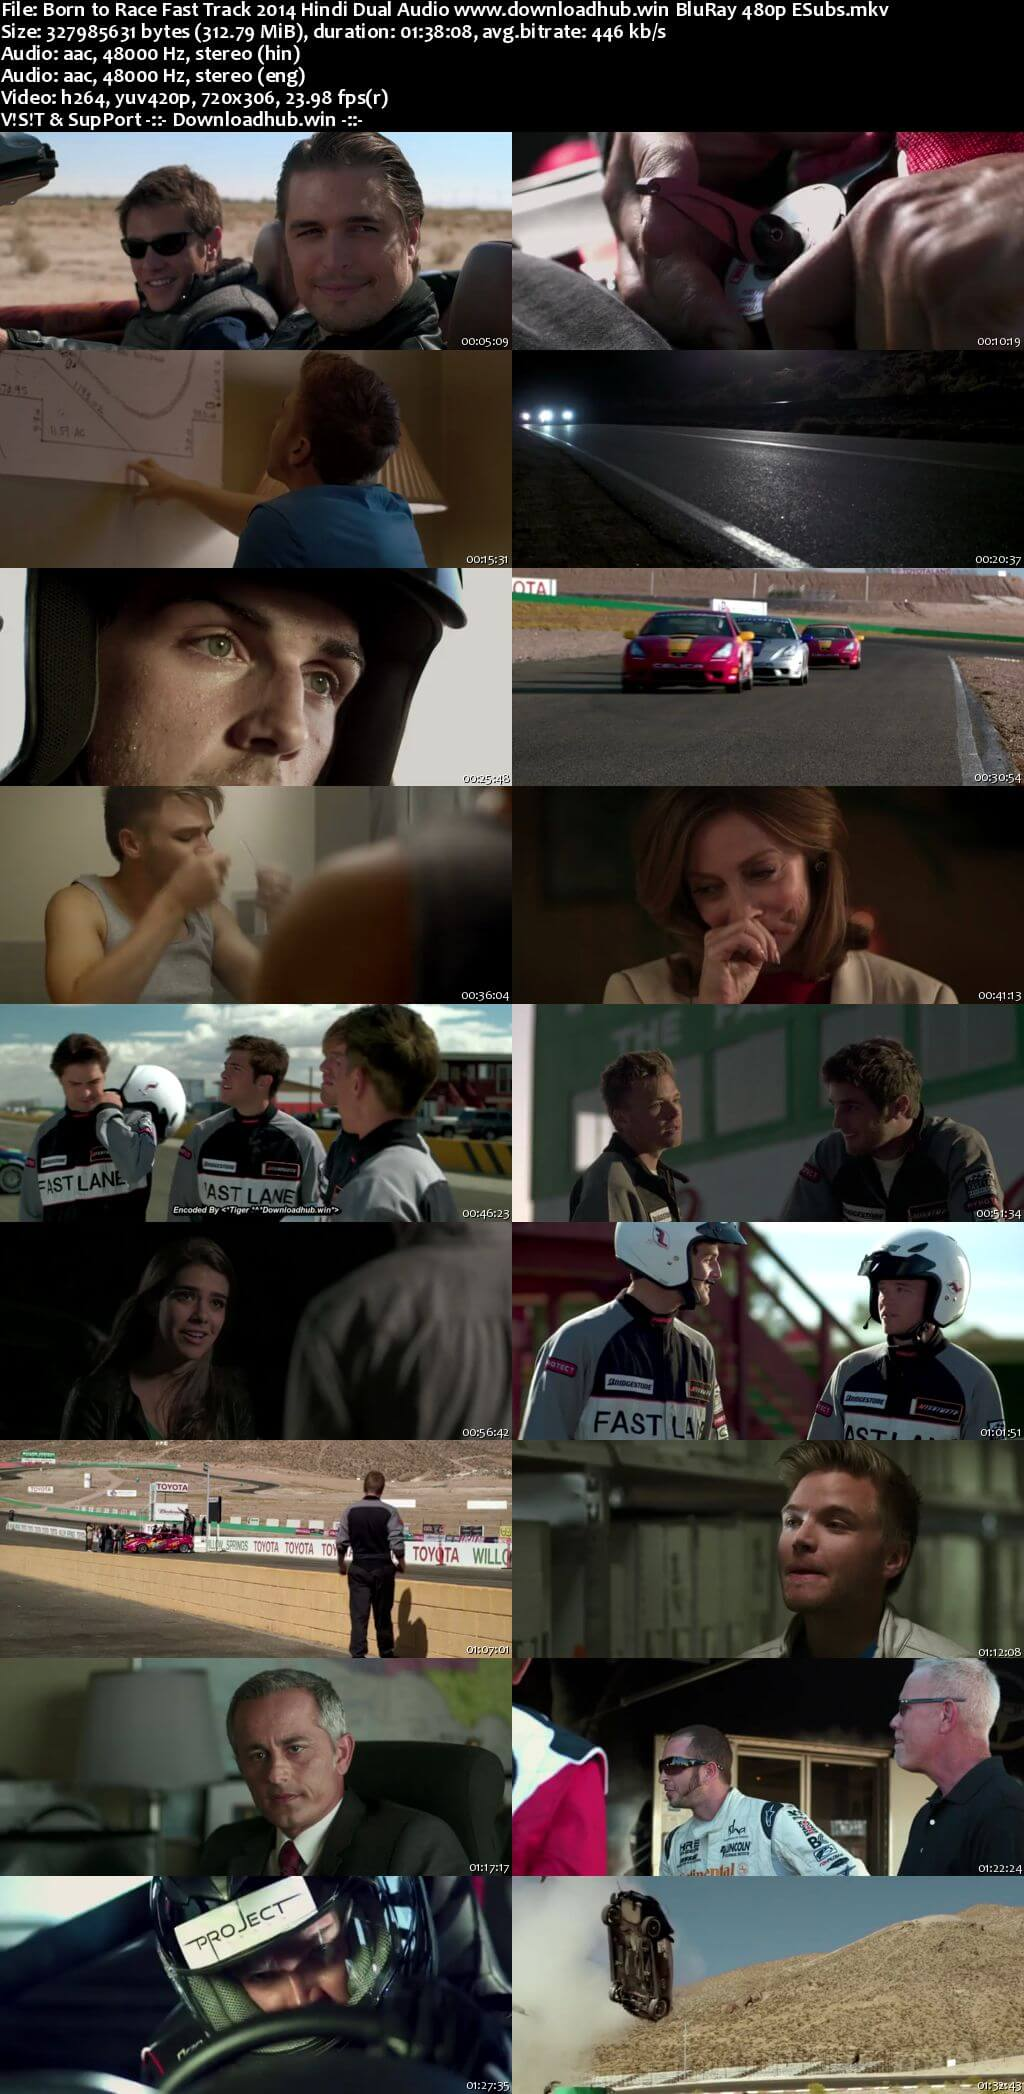 Born to Race Fast Track 2014 Hindi Dual Audio 300MB BluRay 480p ESubs